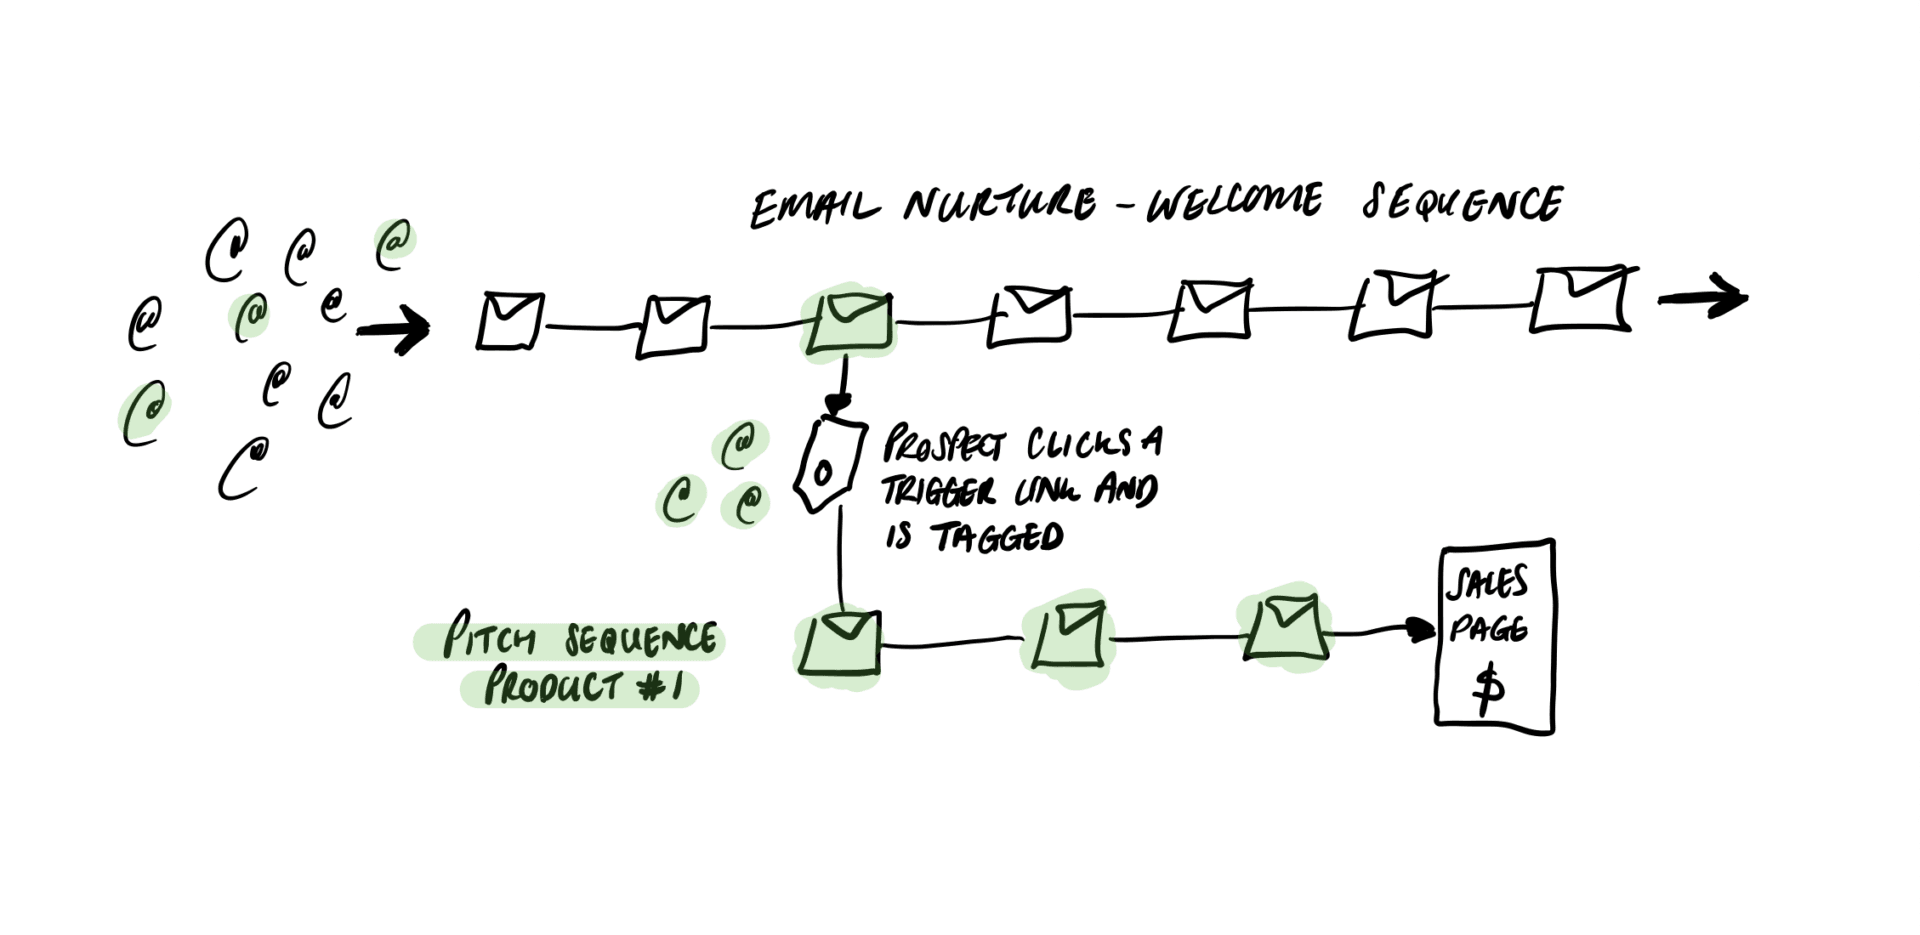 Email Nurture Sequence